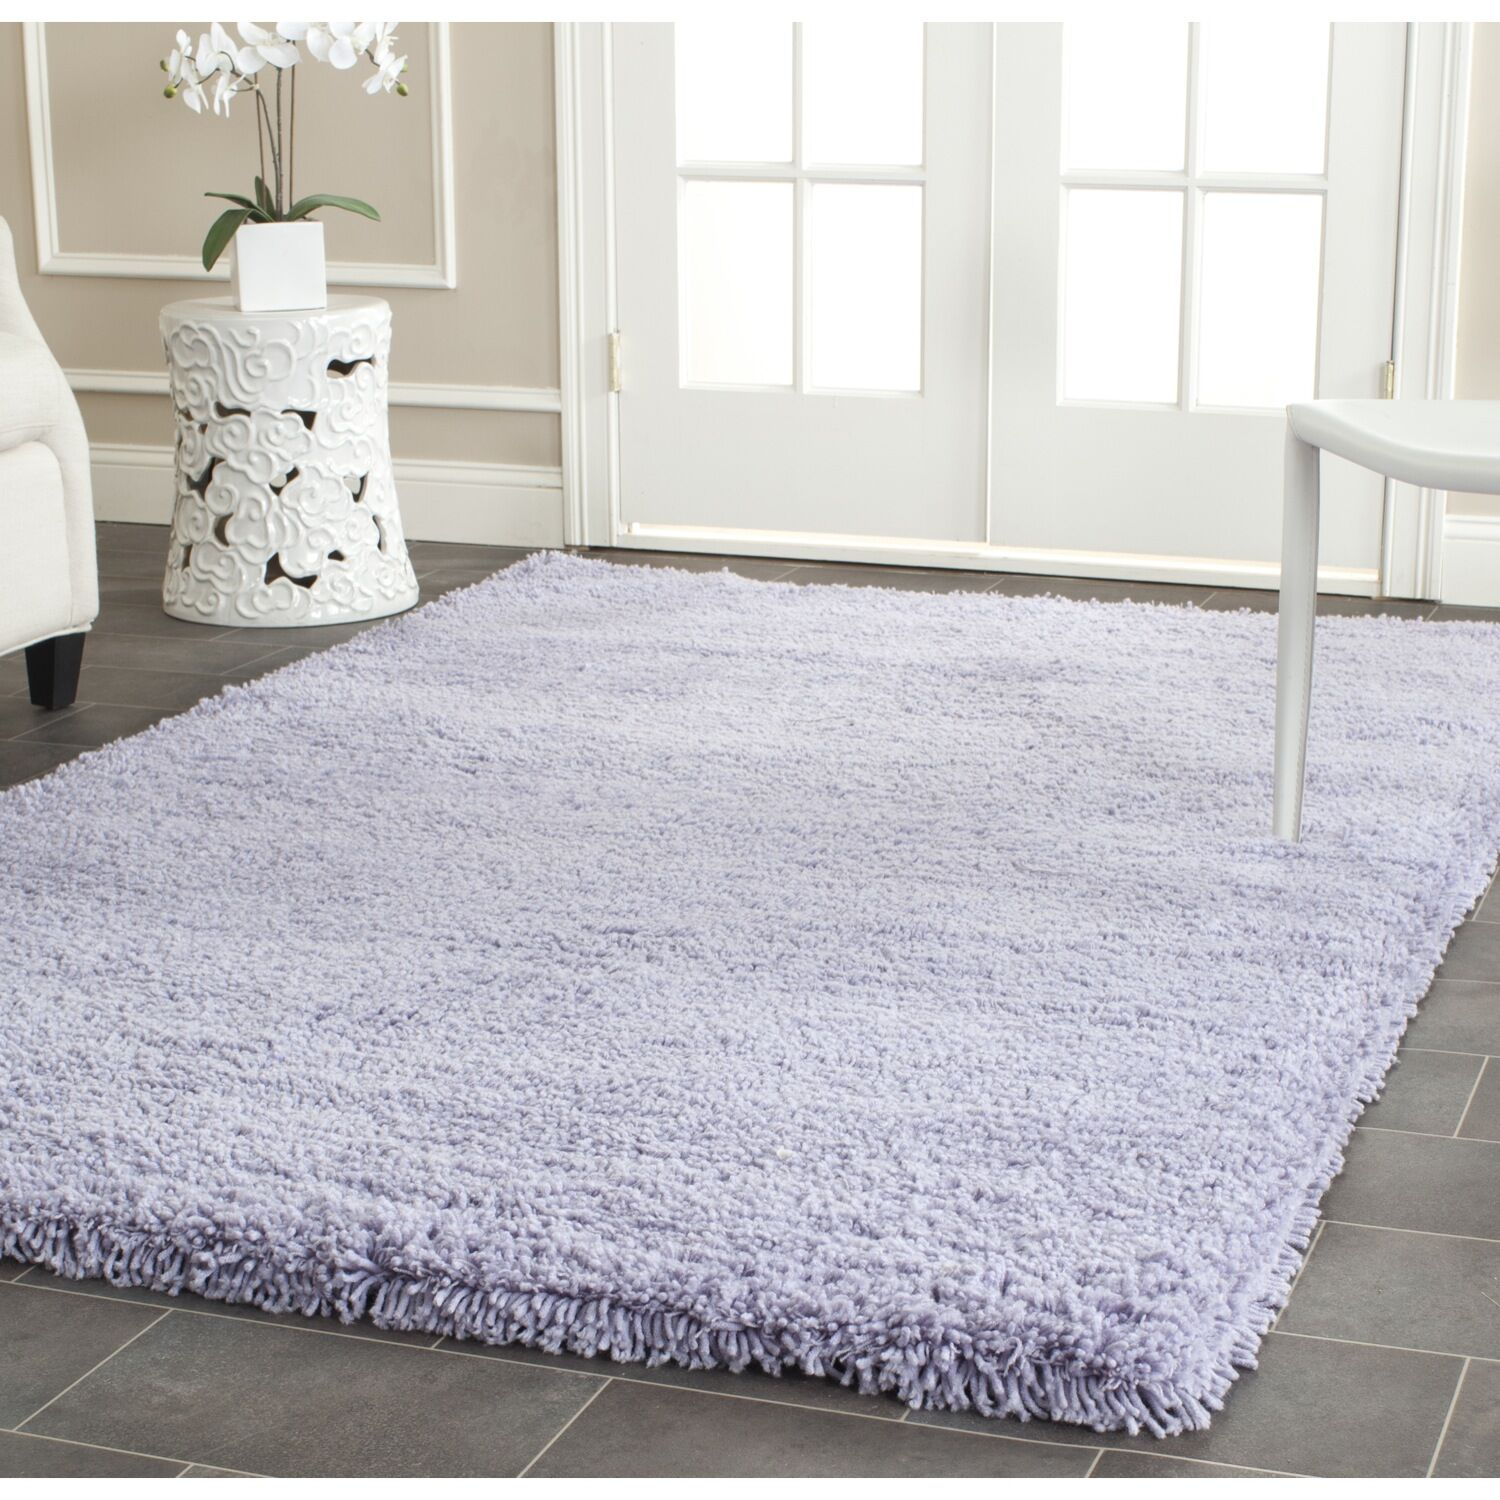 Starr Hill Hand-Woven Purple Area Rug Rug Size: Rectangle 4' x 6'